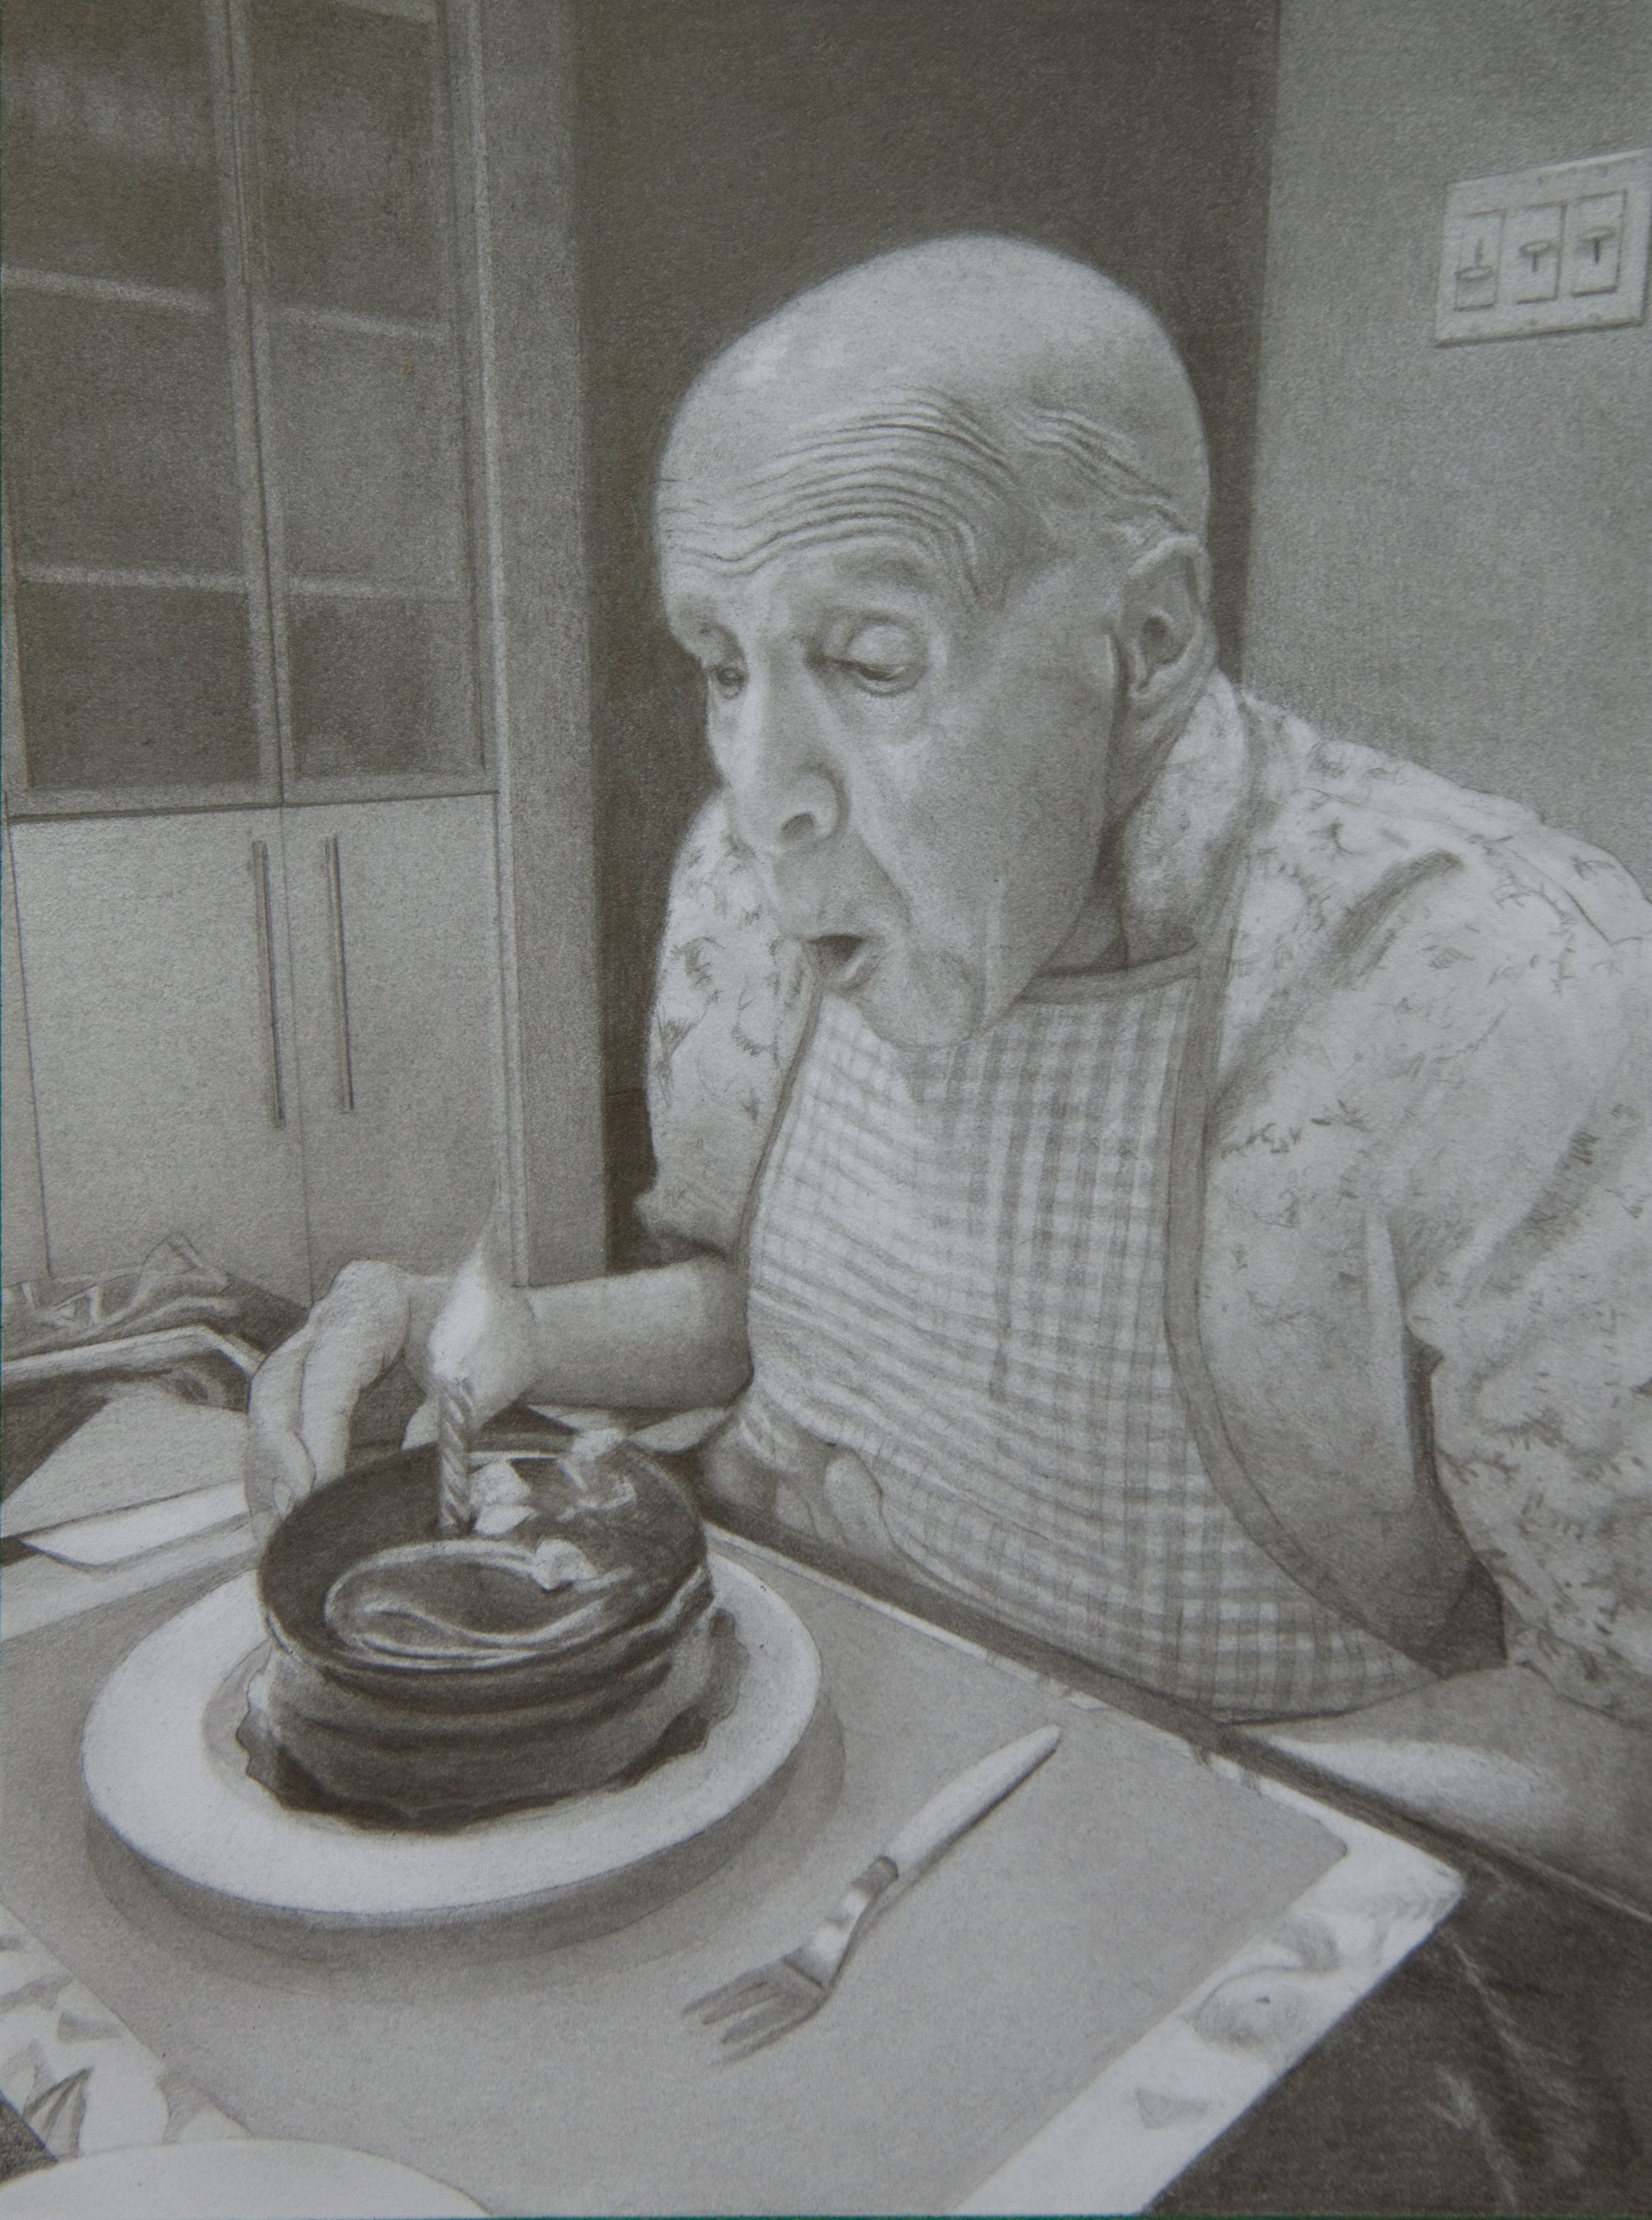 Untitled (Father's Day Cake I)